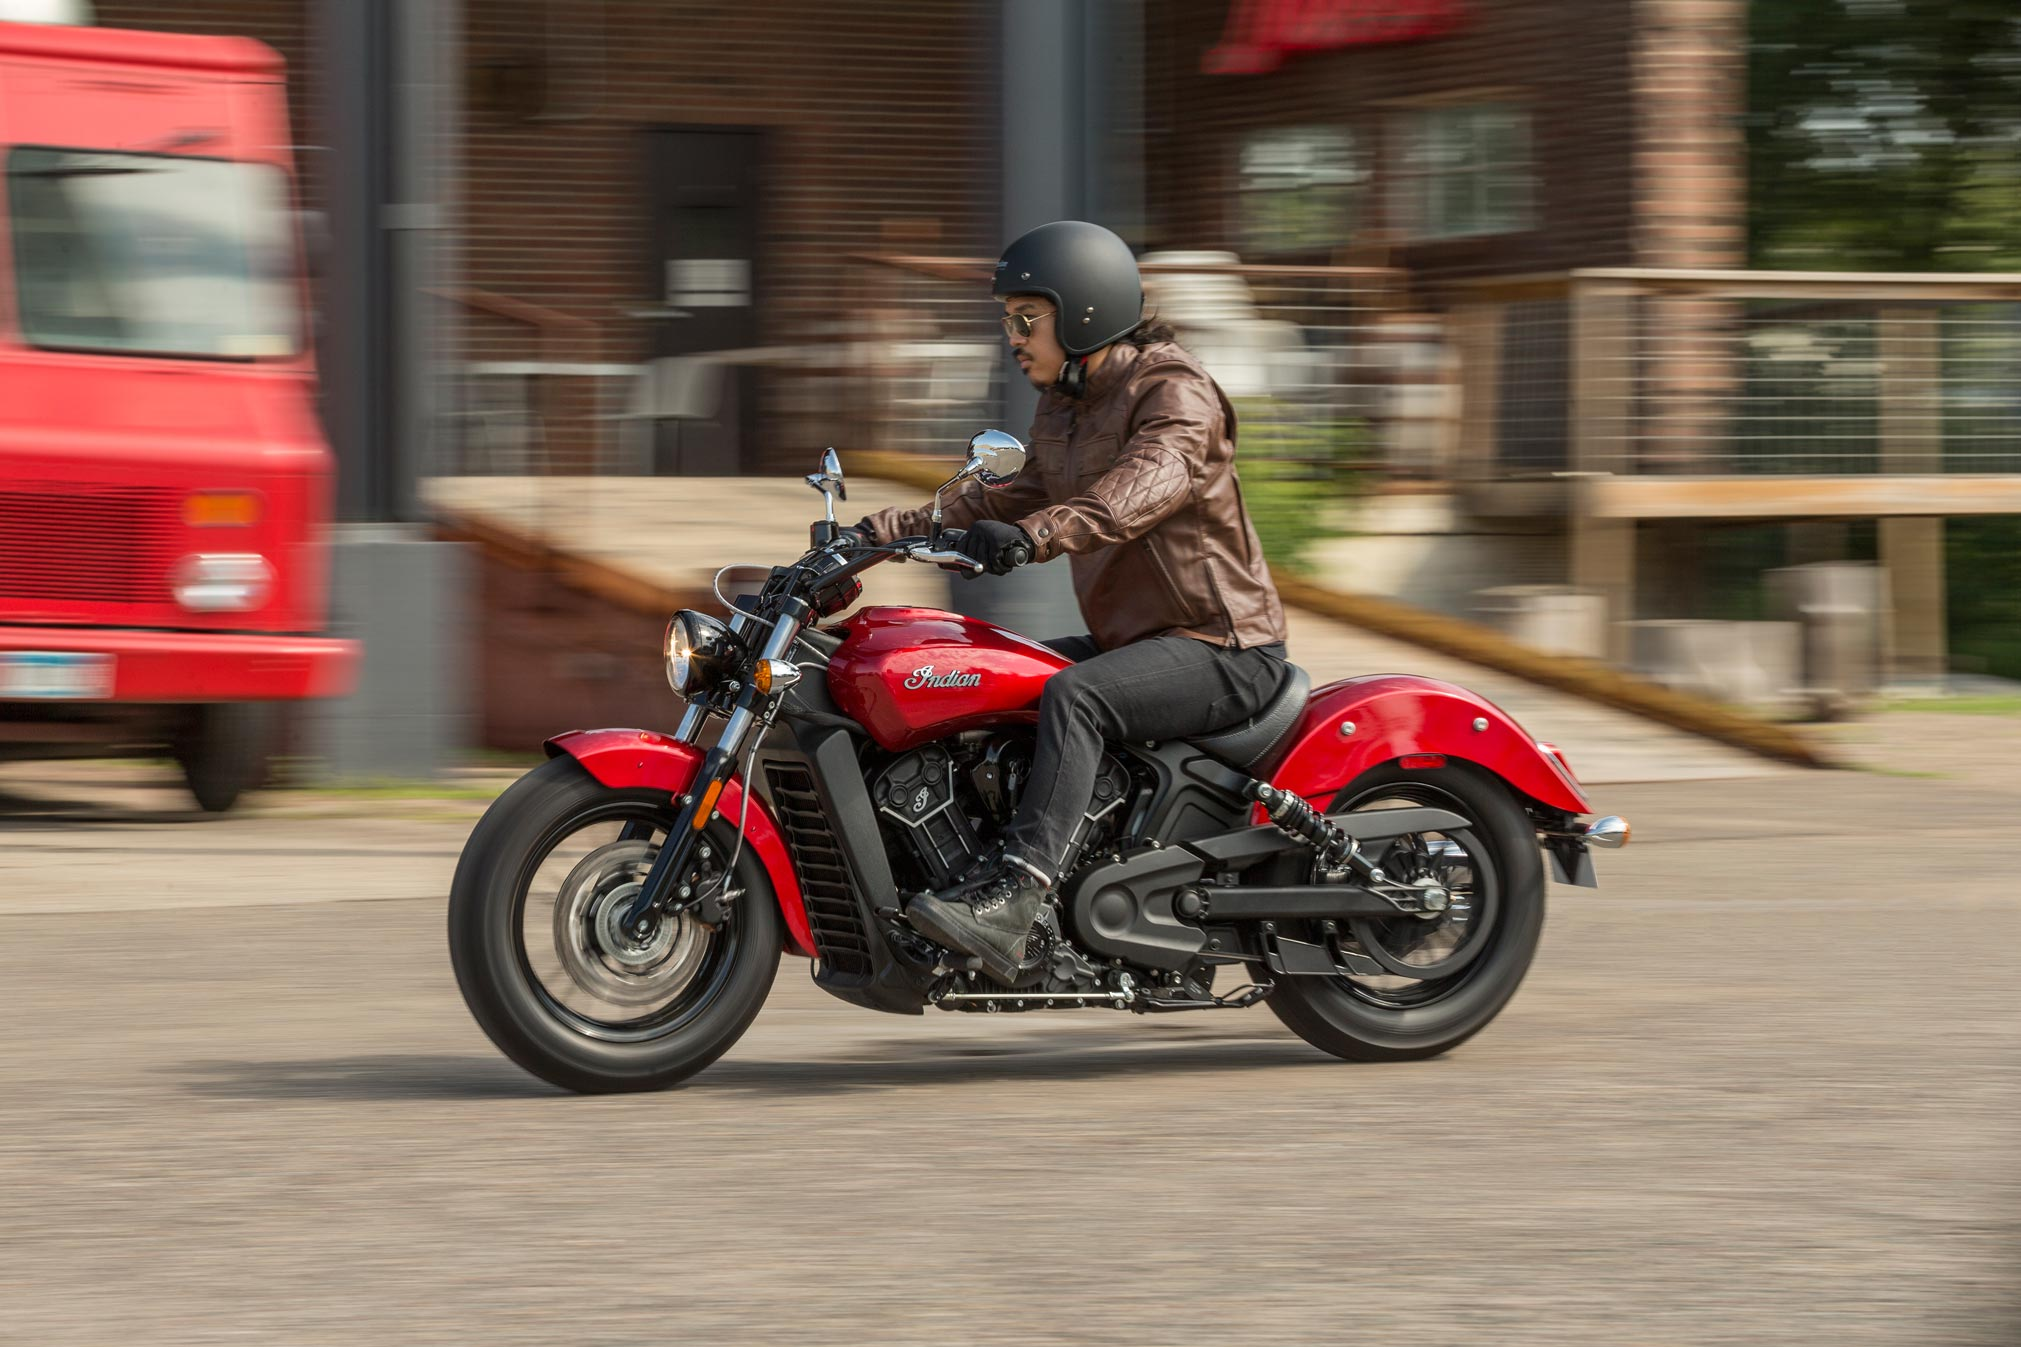 2021 Indian Scout Sixty Guide Total Motorcycle [ 1347 x 2021 Pixel ]